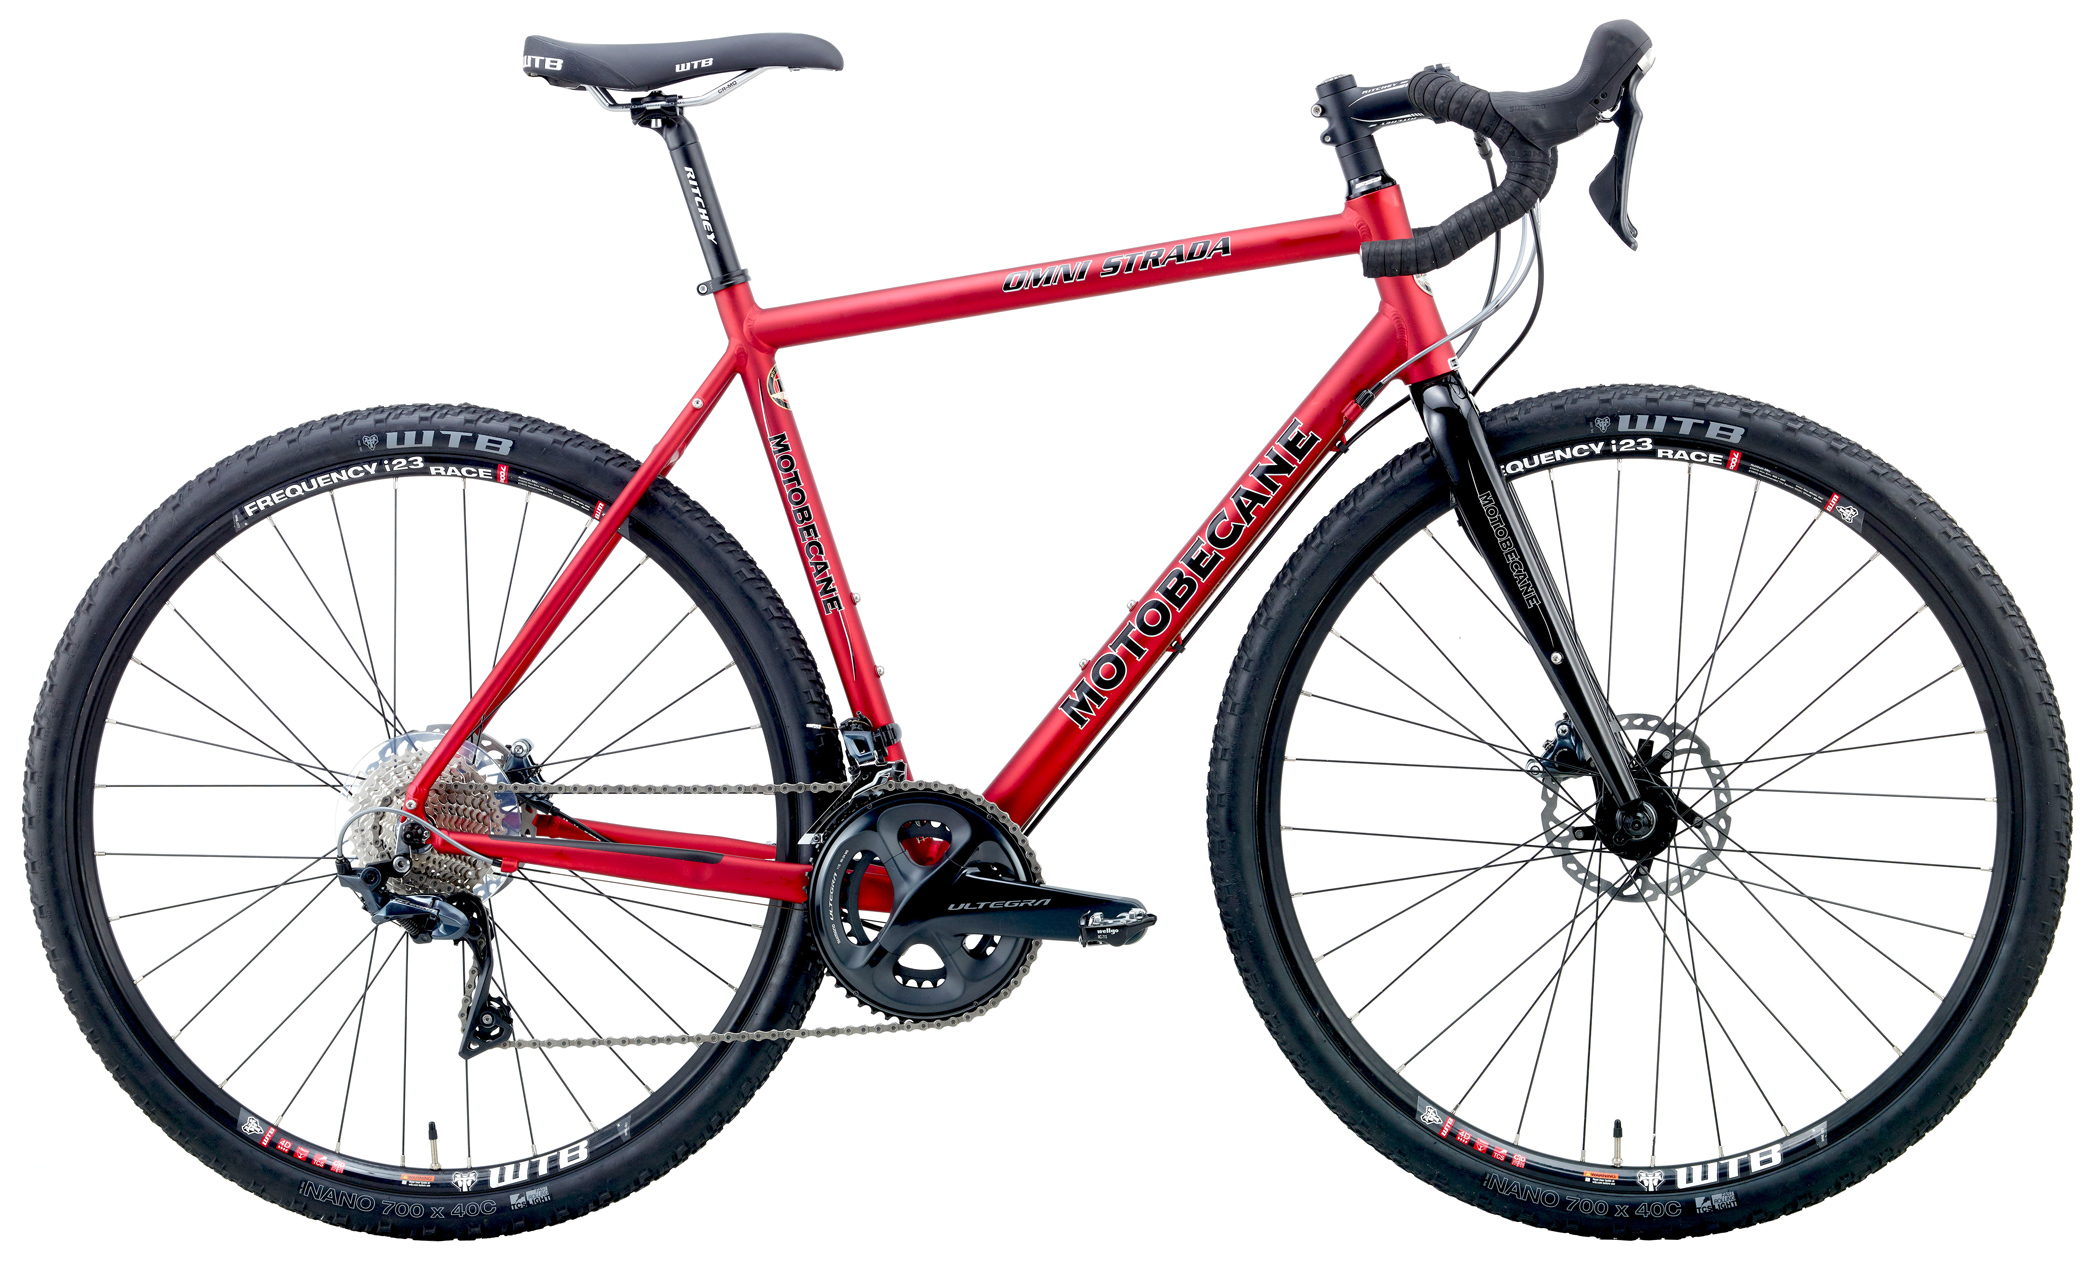 OMNI STRADA PRO - SHIMANO ULTEGRA EQUIPPED GRAVEL BIKE